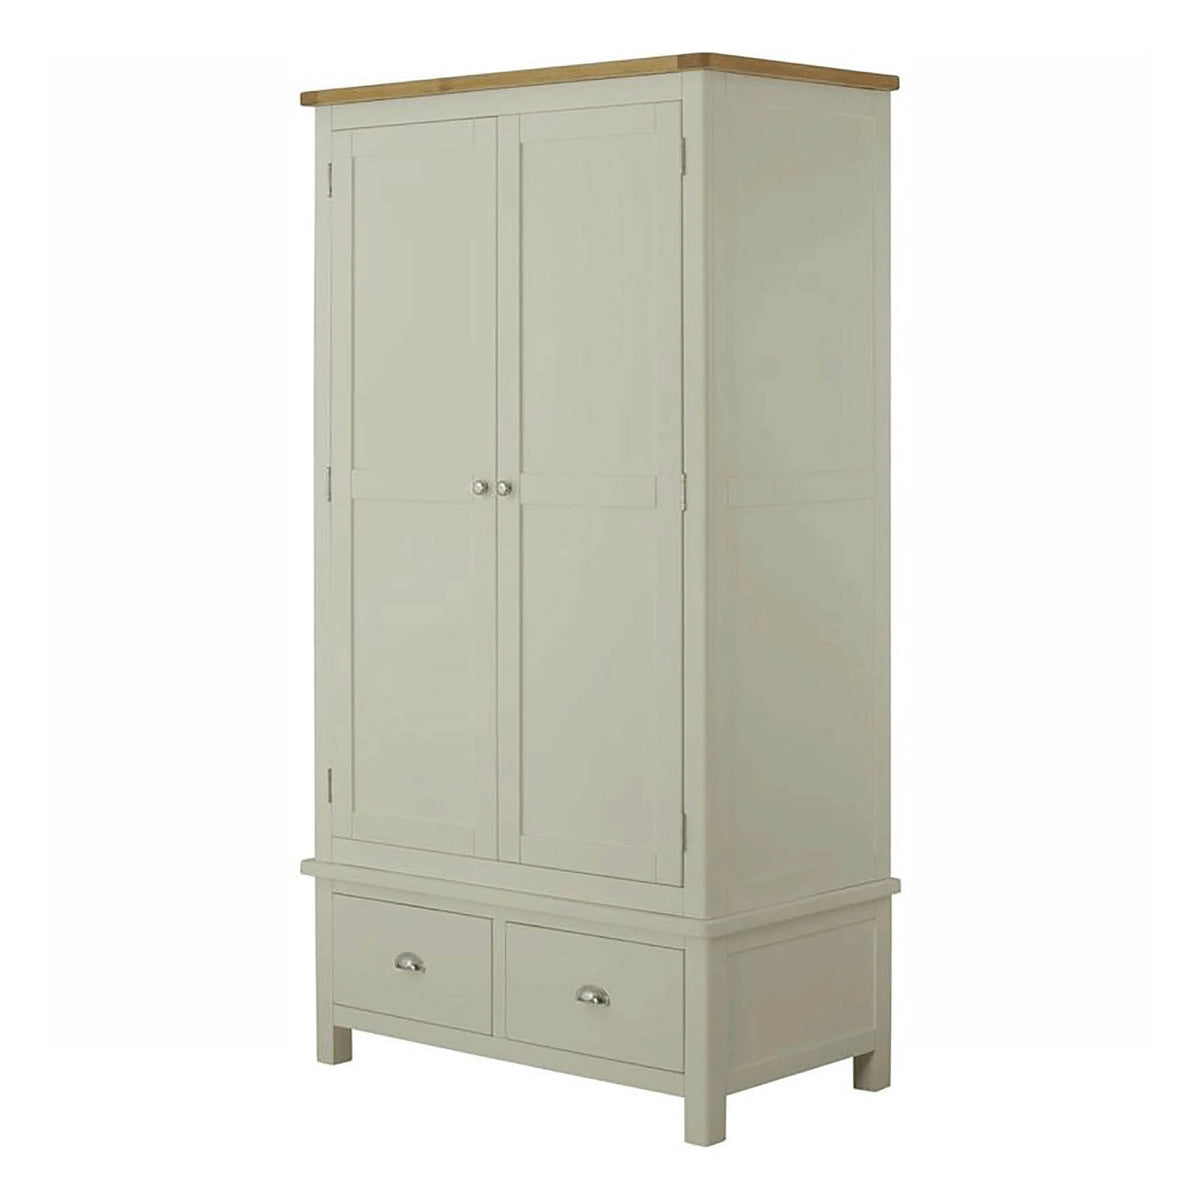 The Padstow Grey Double Wardrobe with 2 Drawers